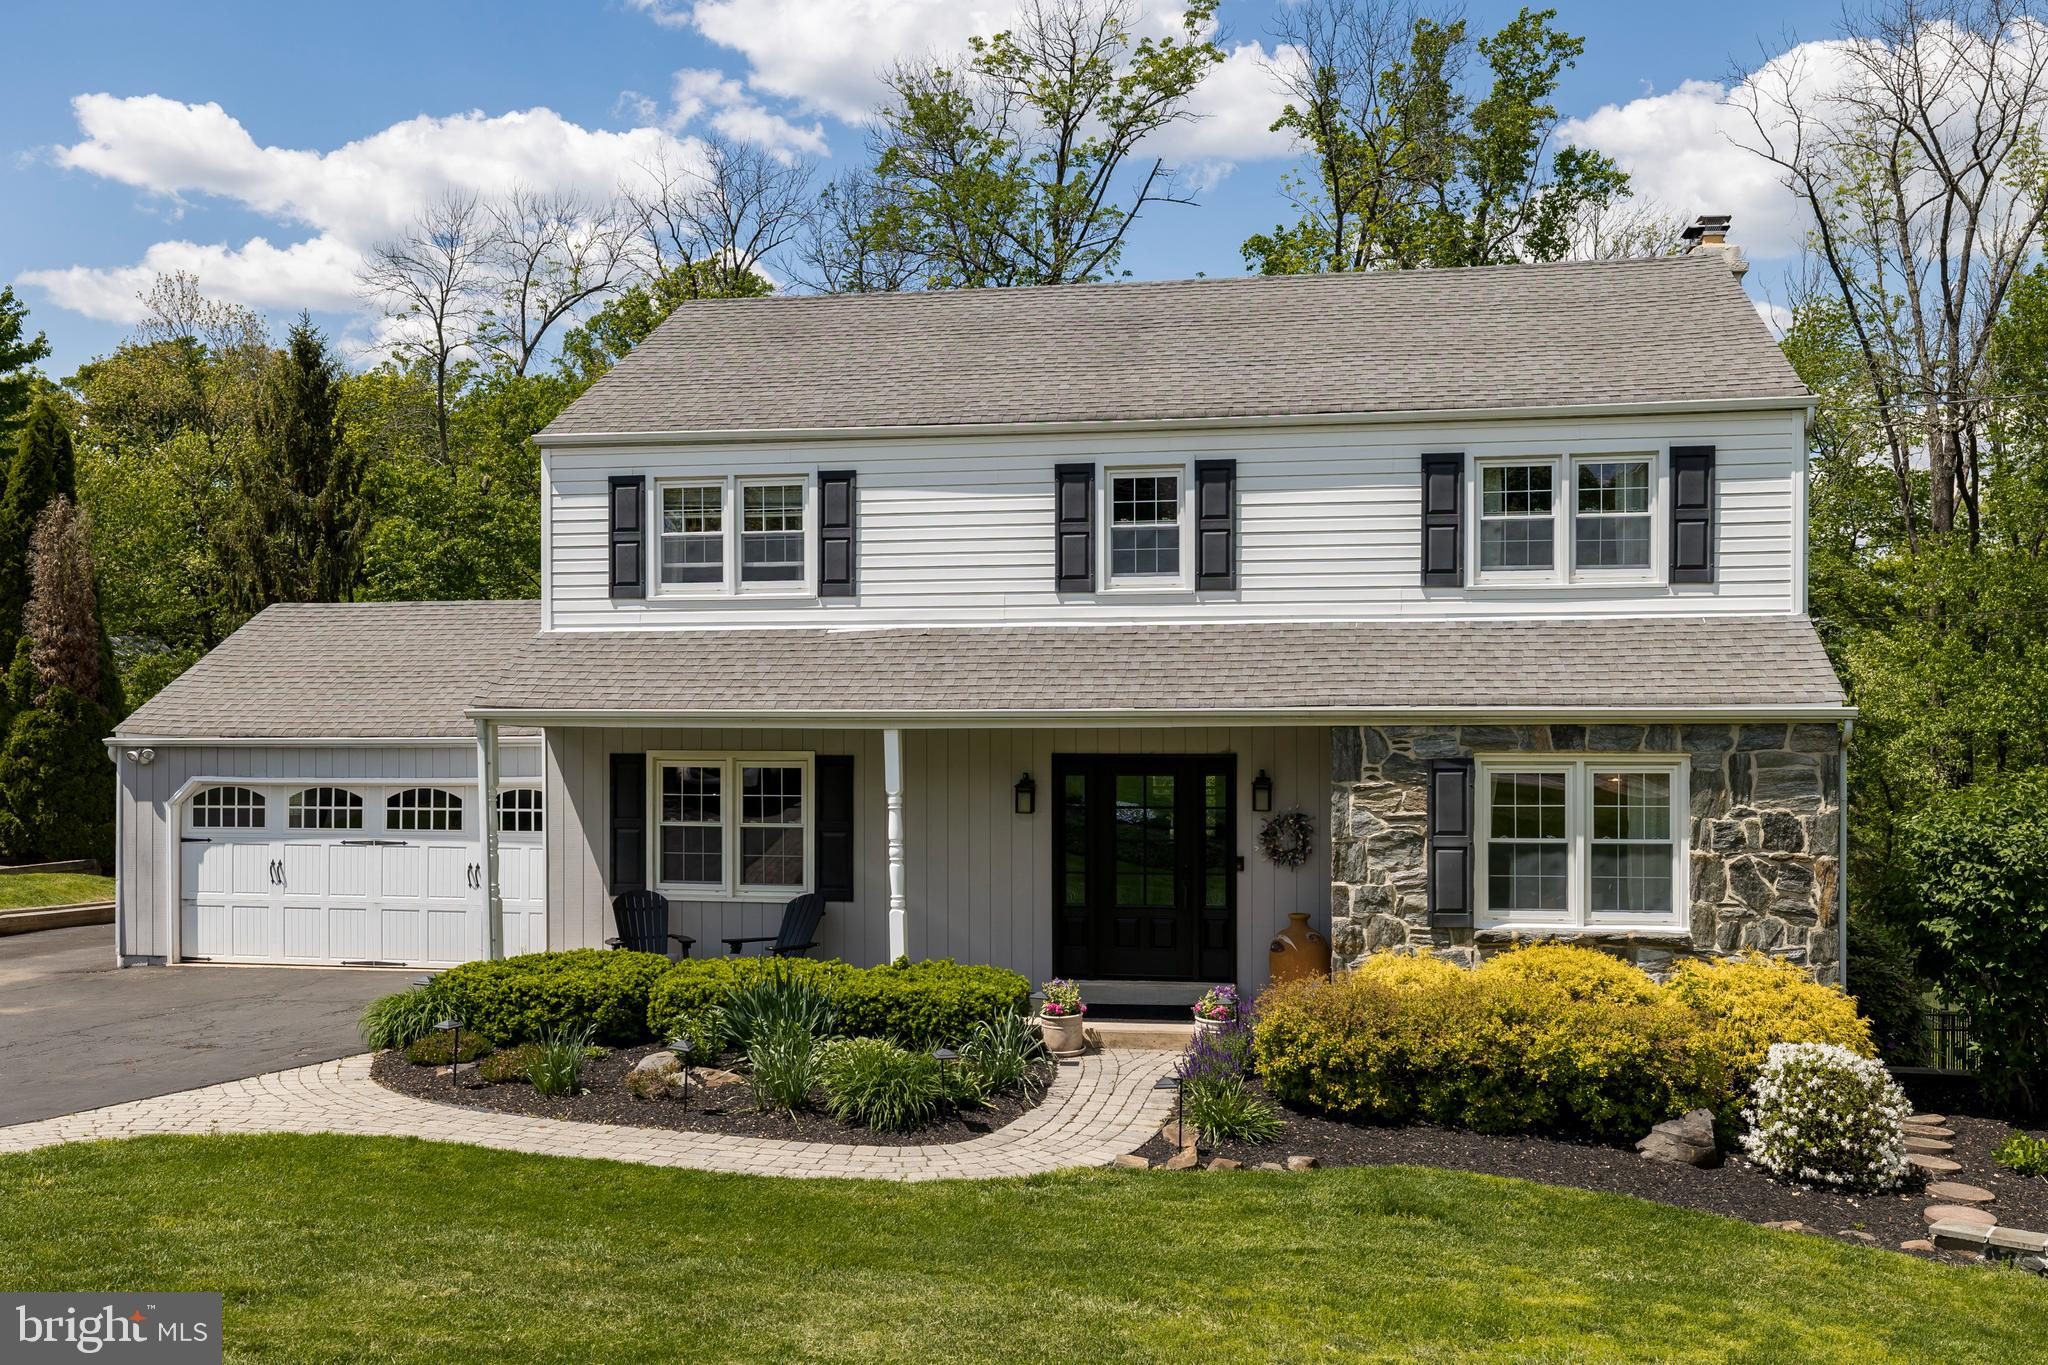 Discover the very best in relaxed living with this stunning Colonial set on a beautiful park-like lot in the award-winning West Chester Area school district.  A brick paver walkway winds through the immaculate gardens to the front porch that invites you to sit awhile before stepping inside to explore this elegant abode.  The layout is bright and welcoming with an open-concept floor plan perfectly crafted for entertaining.  There is a living room and dining room, plus a beautifully remodeled kitchen with stainless steel appliances, a breakfast area and hardwood floors.  The kitchen takes in views over the family room complete with a stone fireplace and slider doors that open out to a wonderful screened porch that is awaiting you and your morning coffee. There are five large bedrooms and 3 full bathrooms and 2 powder rooms including your second-level owner's suite with a walk-in closet and a luxurious master bath. There are three additional bedrooms also housed on the second level while the finished lower level features extra living space with an in-law suite and a walkout to the amazing backyard.  Here, you are treated to an entertainer's oasis with covered lounge areas and a sparkling built-in pool plus sweeping views over the lush lawn and out to the treeline.  Outdoor lighting brings this haven to life at night.  Extra features include a two-car garage, a whole-house generator, ceiling fans throughout and a huge storage shed. This is a truly move-in ready home just waiting for you to unpack and enjoy.